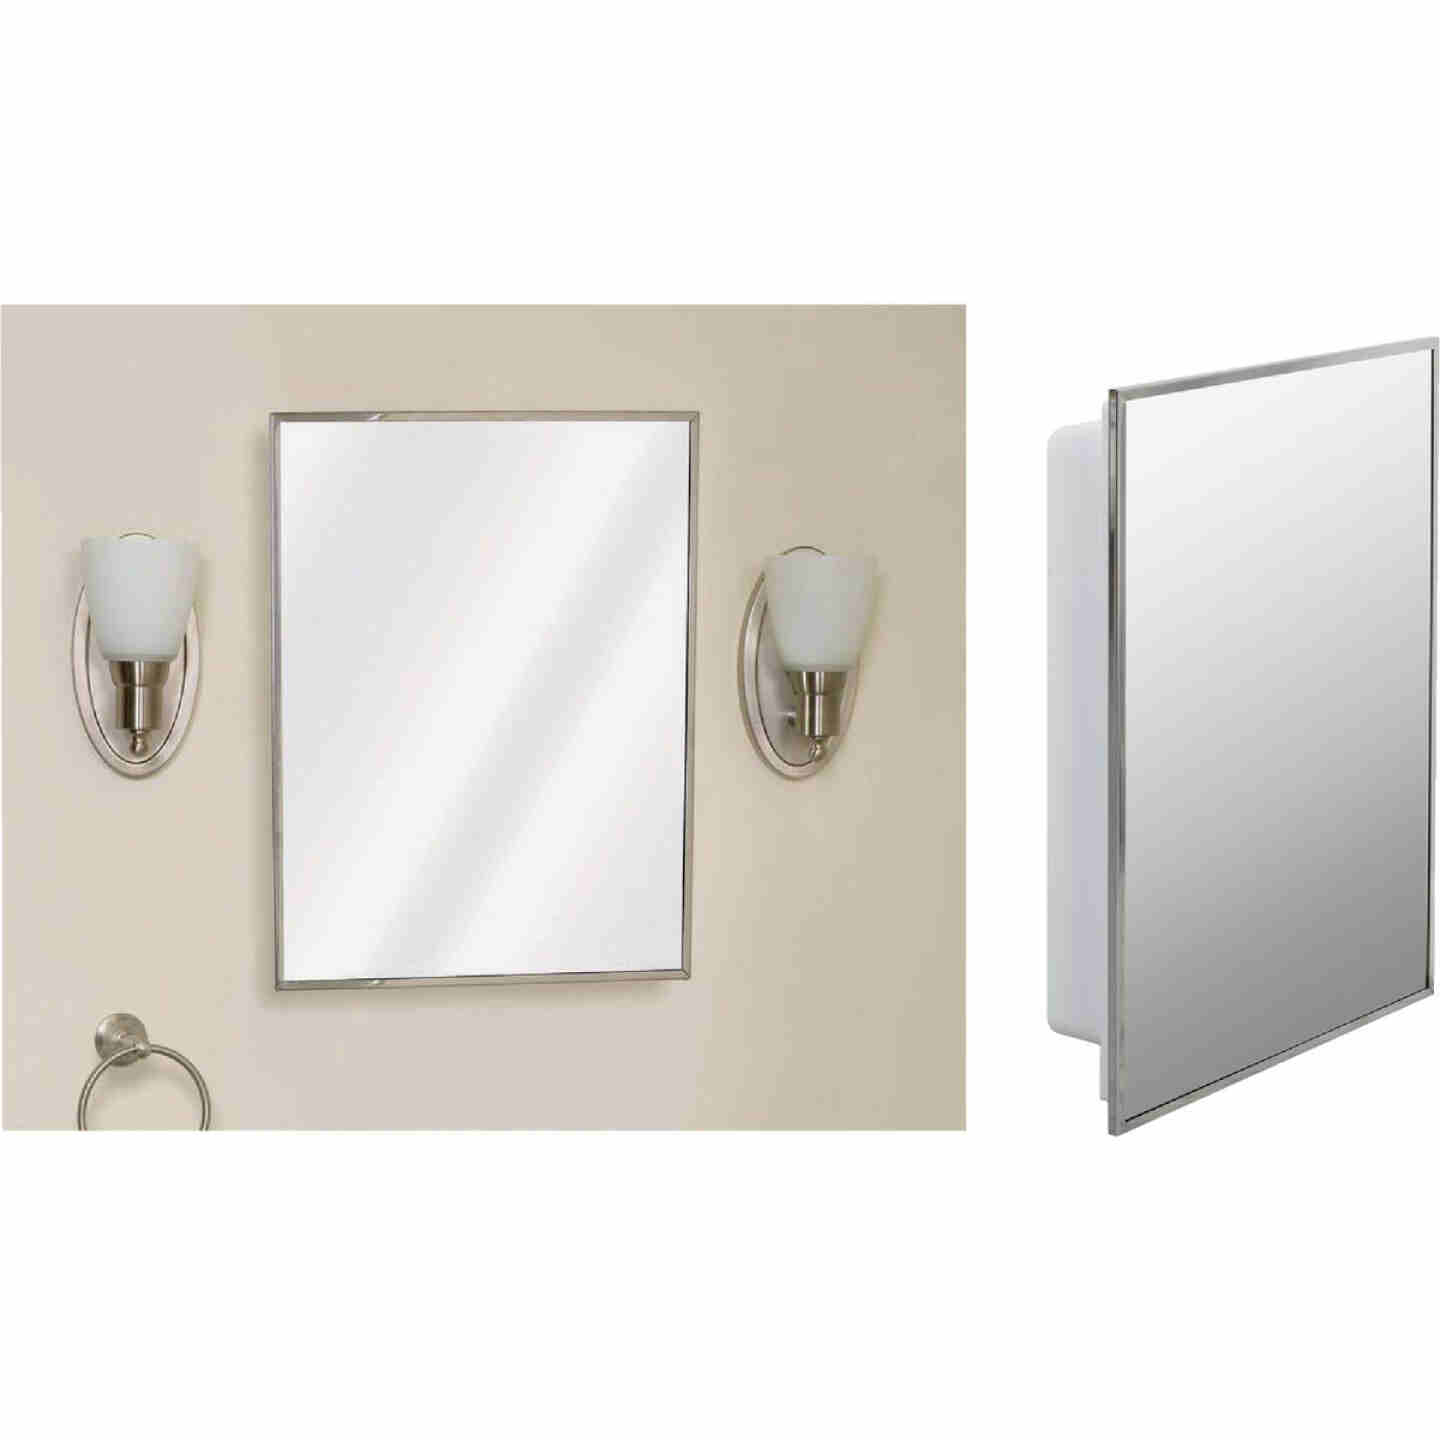 Zenith Stainless Steel 16-1/8 In. W x 20-1/8 In. H x 3-1/4 In. D Single Mirror Surface/Recess Mount Medicine Cabinet Image 1